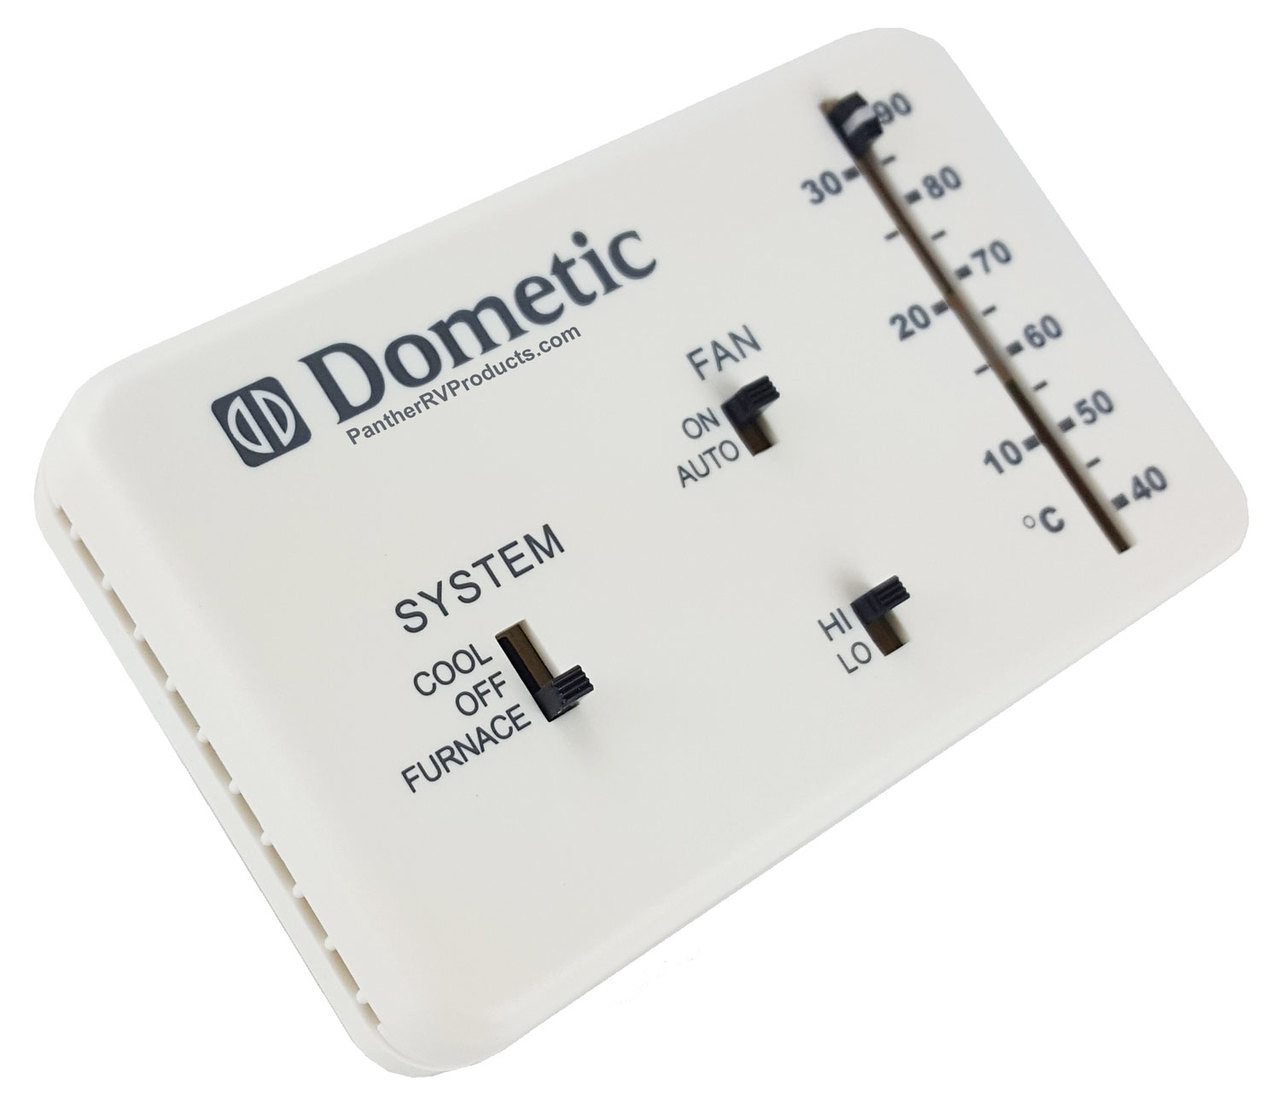 Dometic 3106995032 Thermostat 6 Wire Analog Control Heat Cool Camper Furnace Wiring